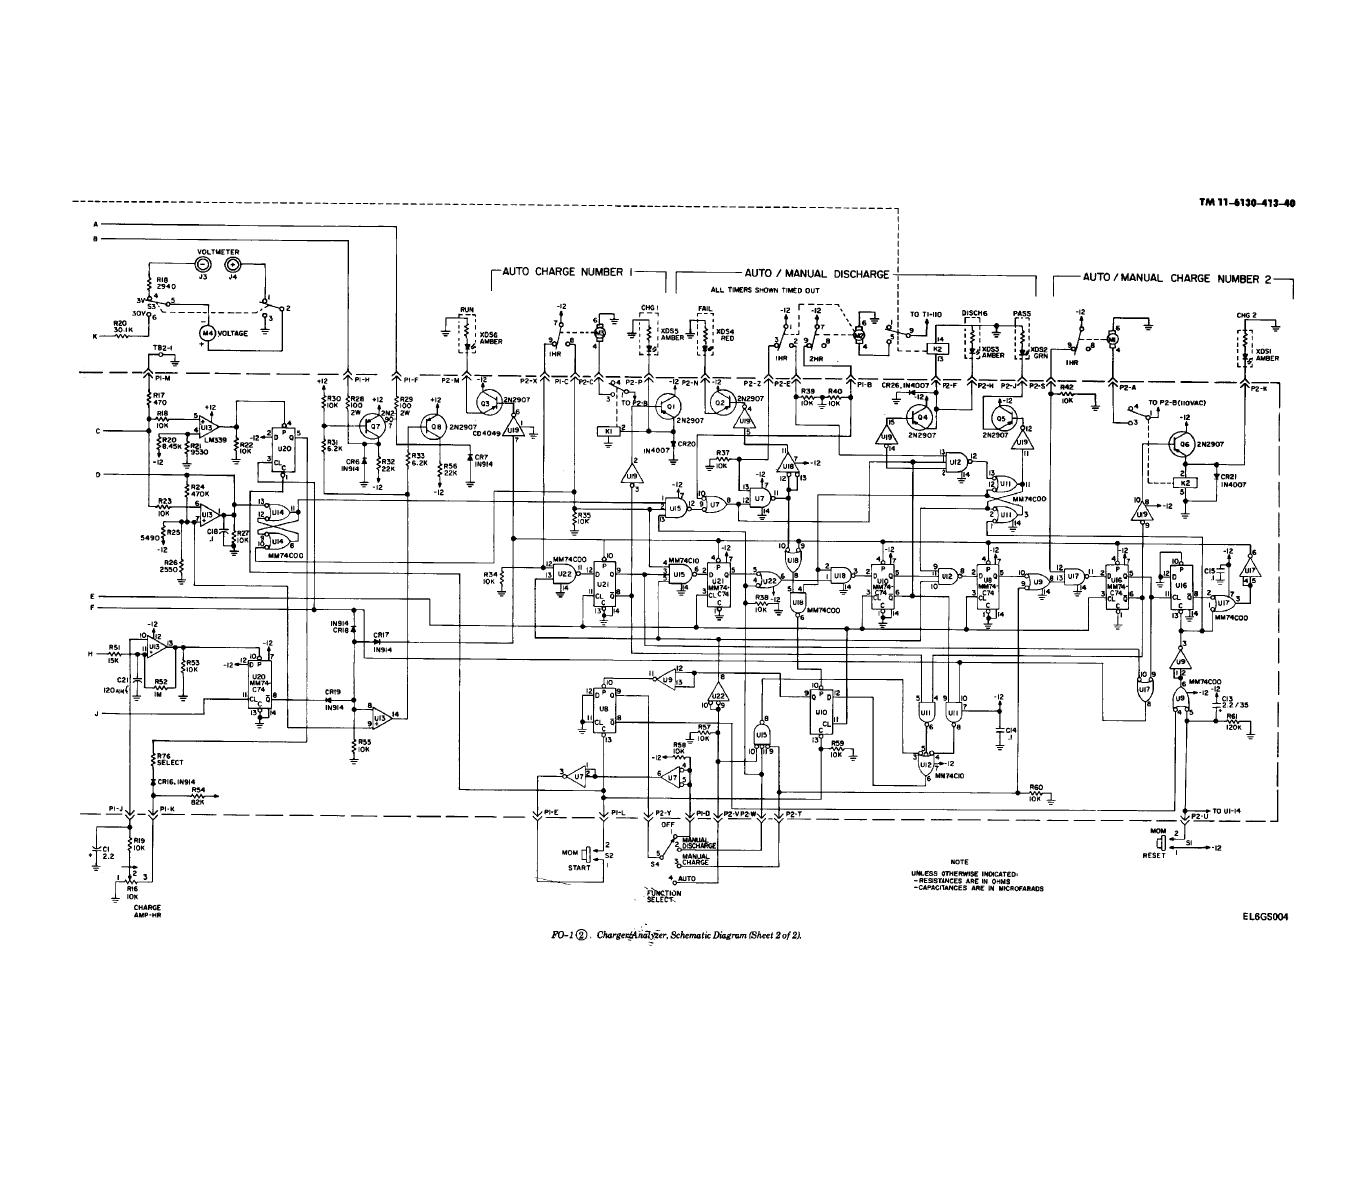 Circuit Diagram Sheet Explained Wiring Diagrams 555 Timer Icblock Diagramworkingpin Out Configurationdata Fo 1 Charger Analyzerschematic 2 Of Ac